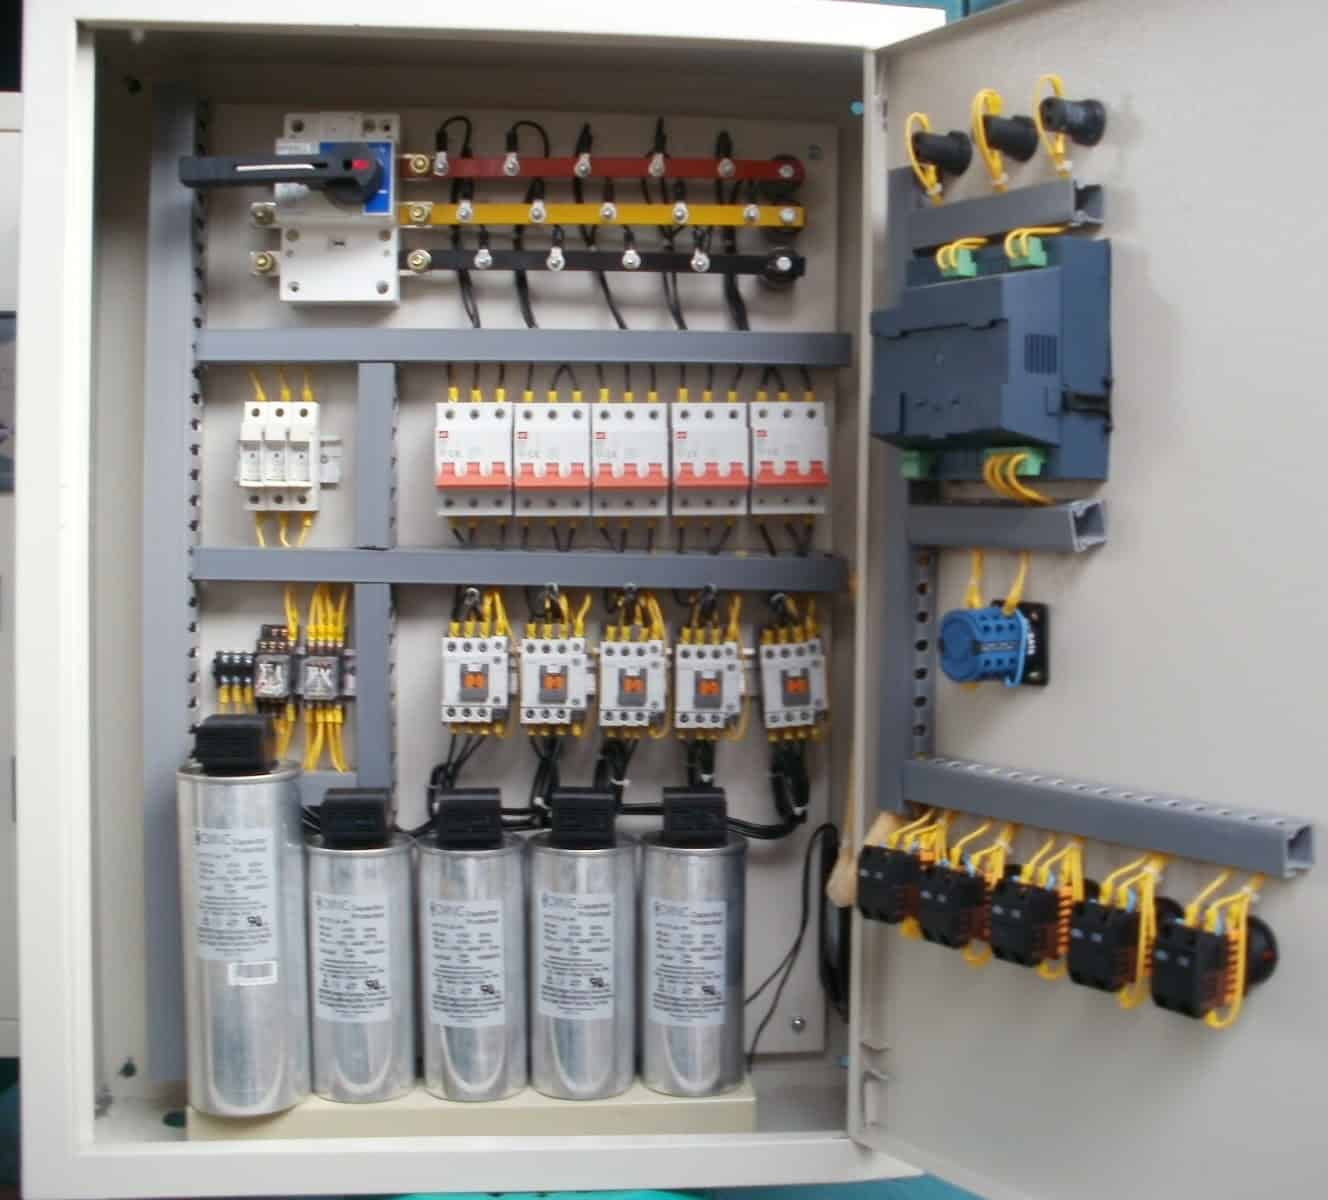 hight resolution of capacitor bank in industries wiring and power distribution